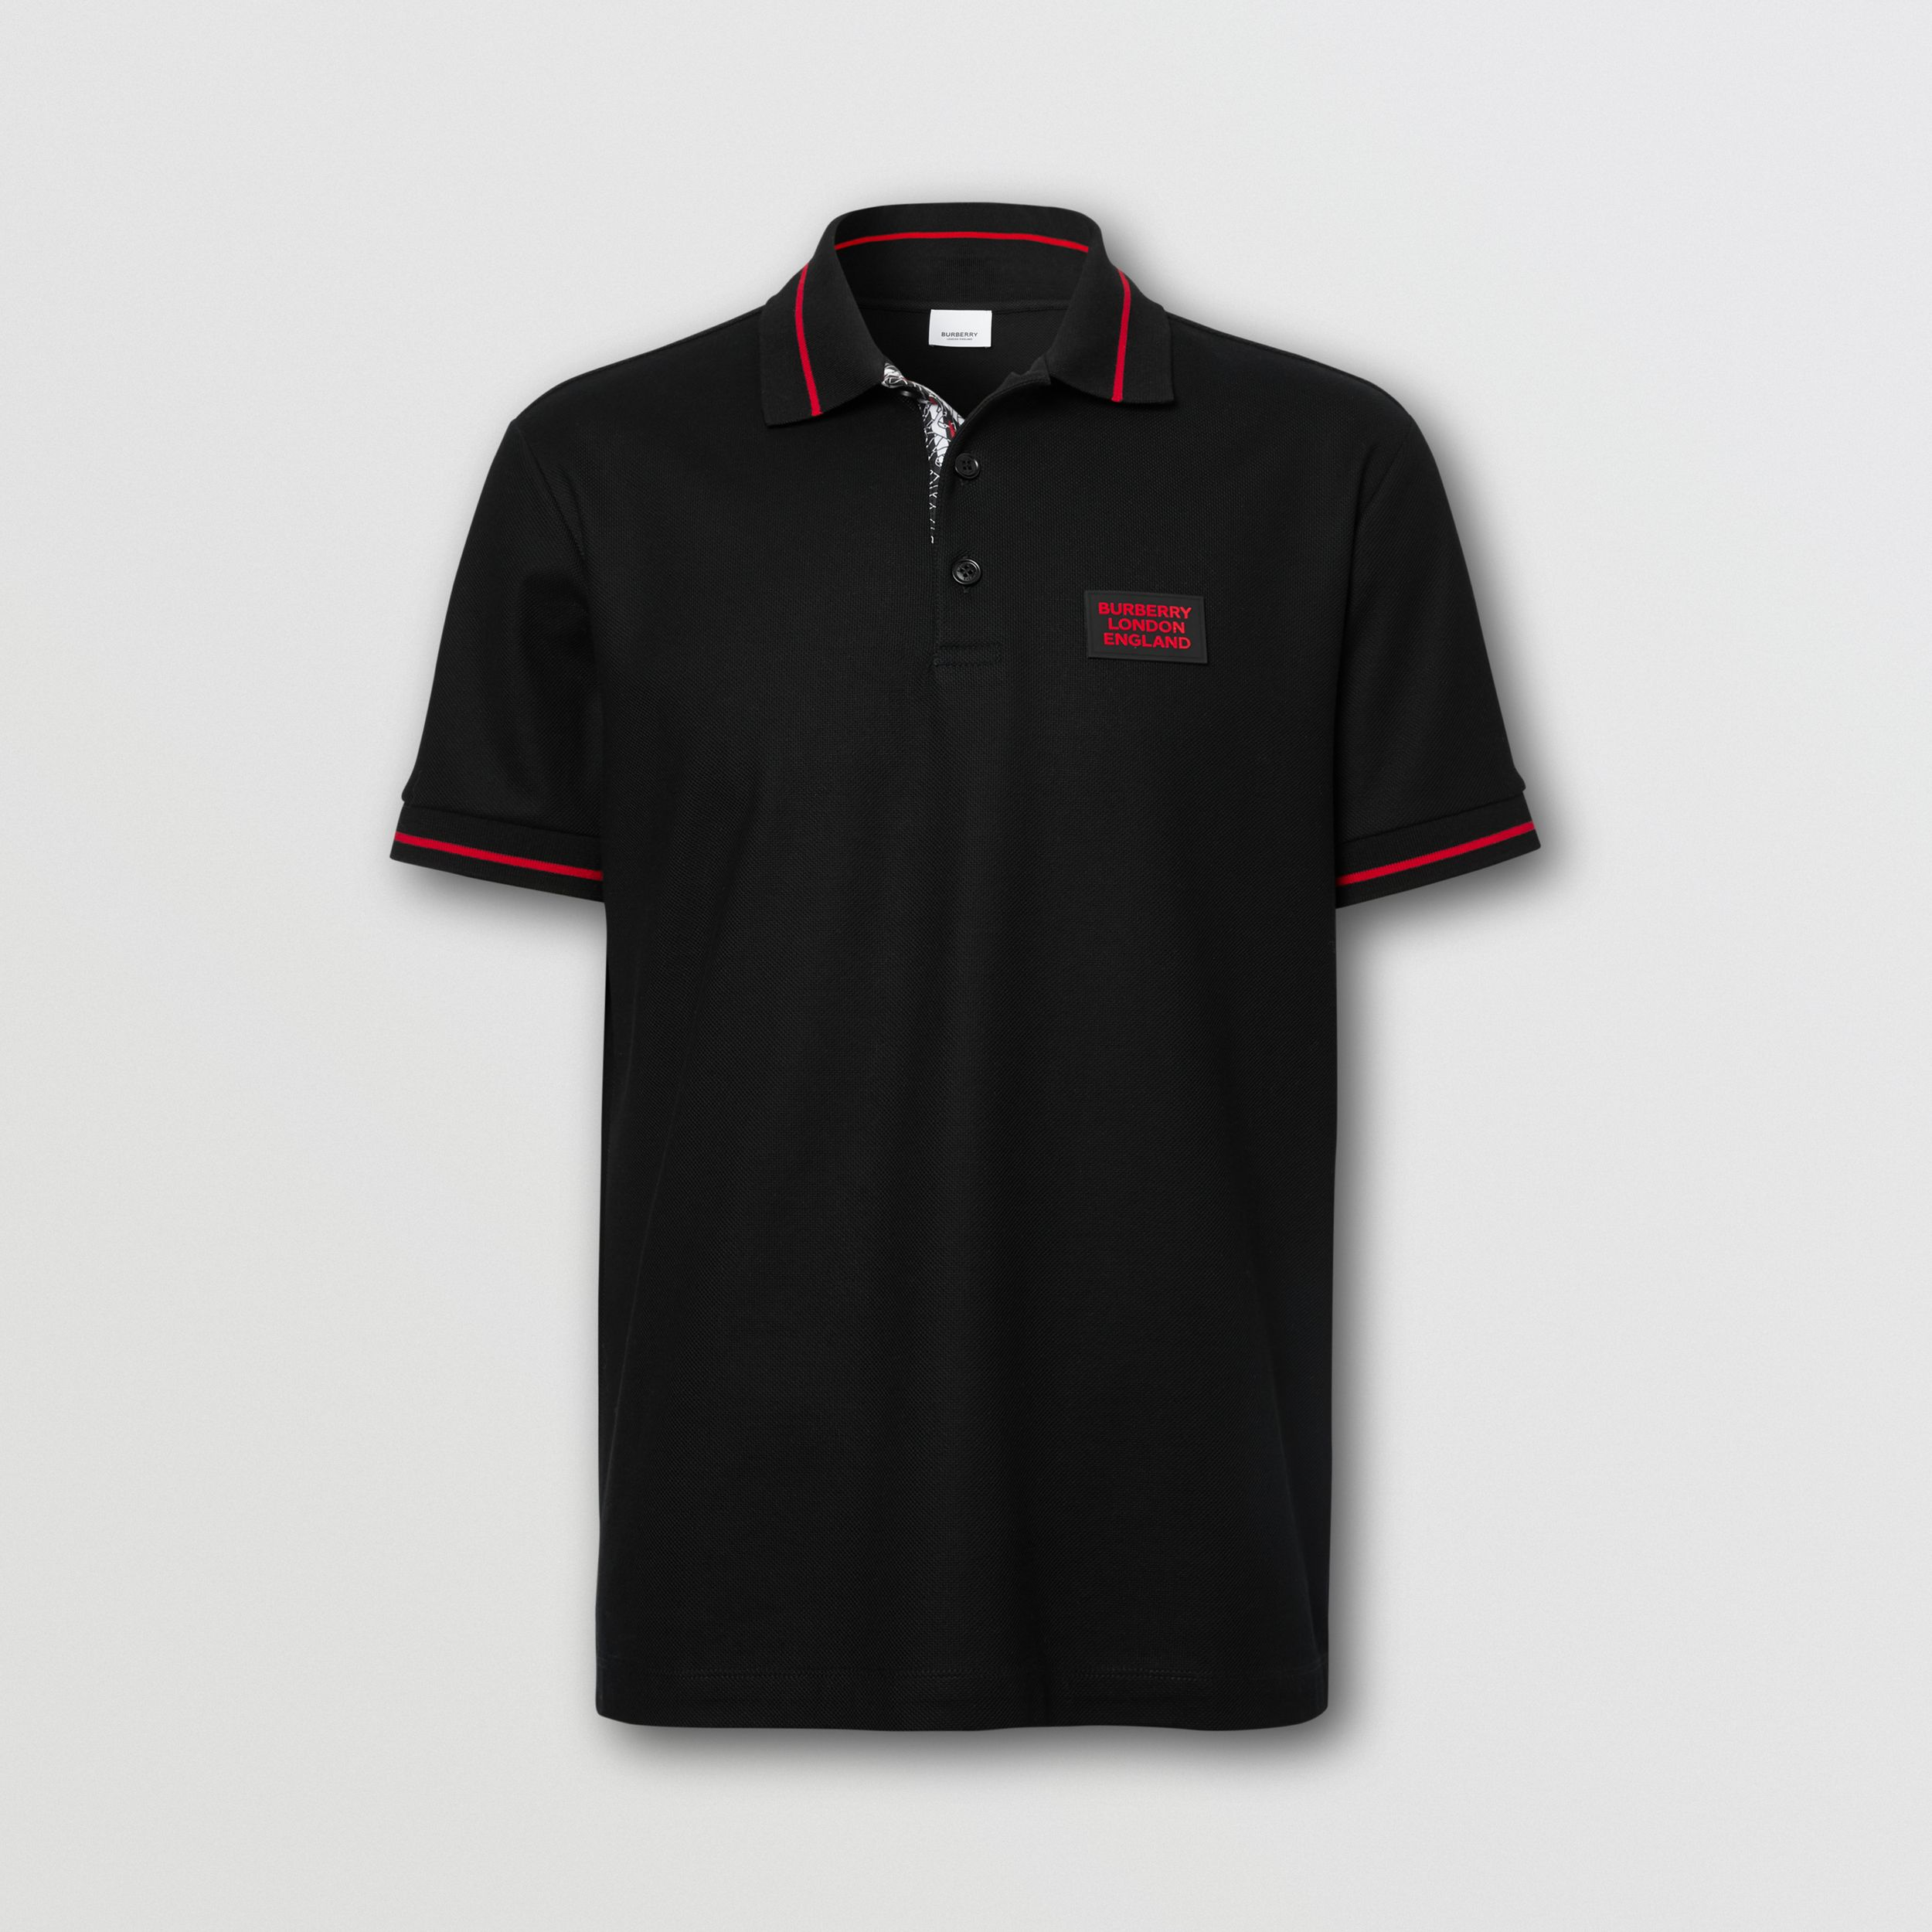 Logo Appliqué Cotton Piqué Polo Shirt in Black - Men | Burberry - 4